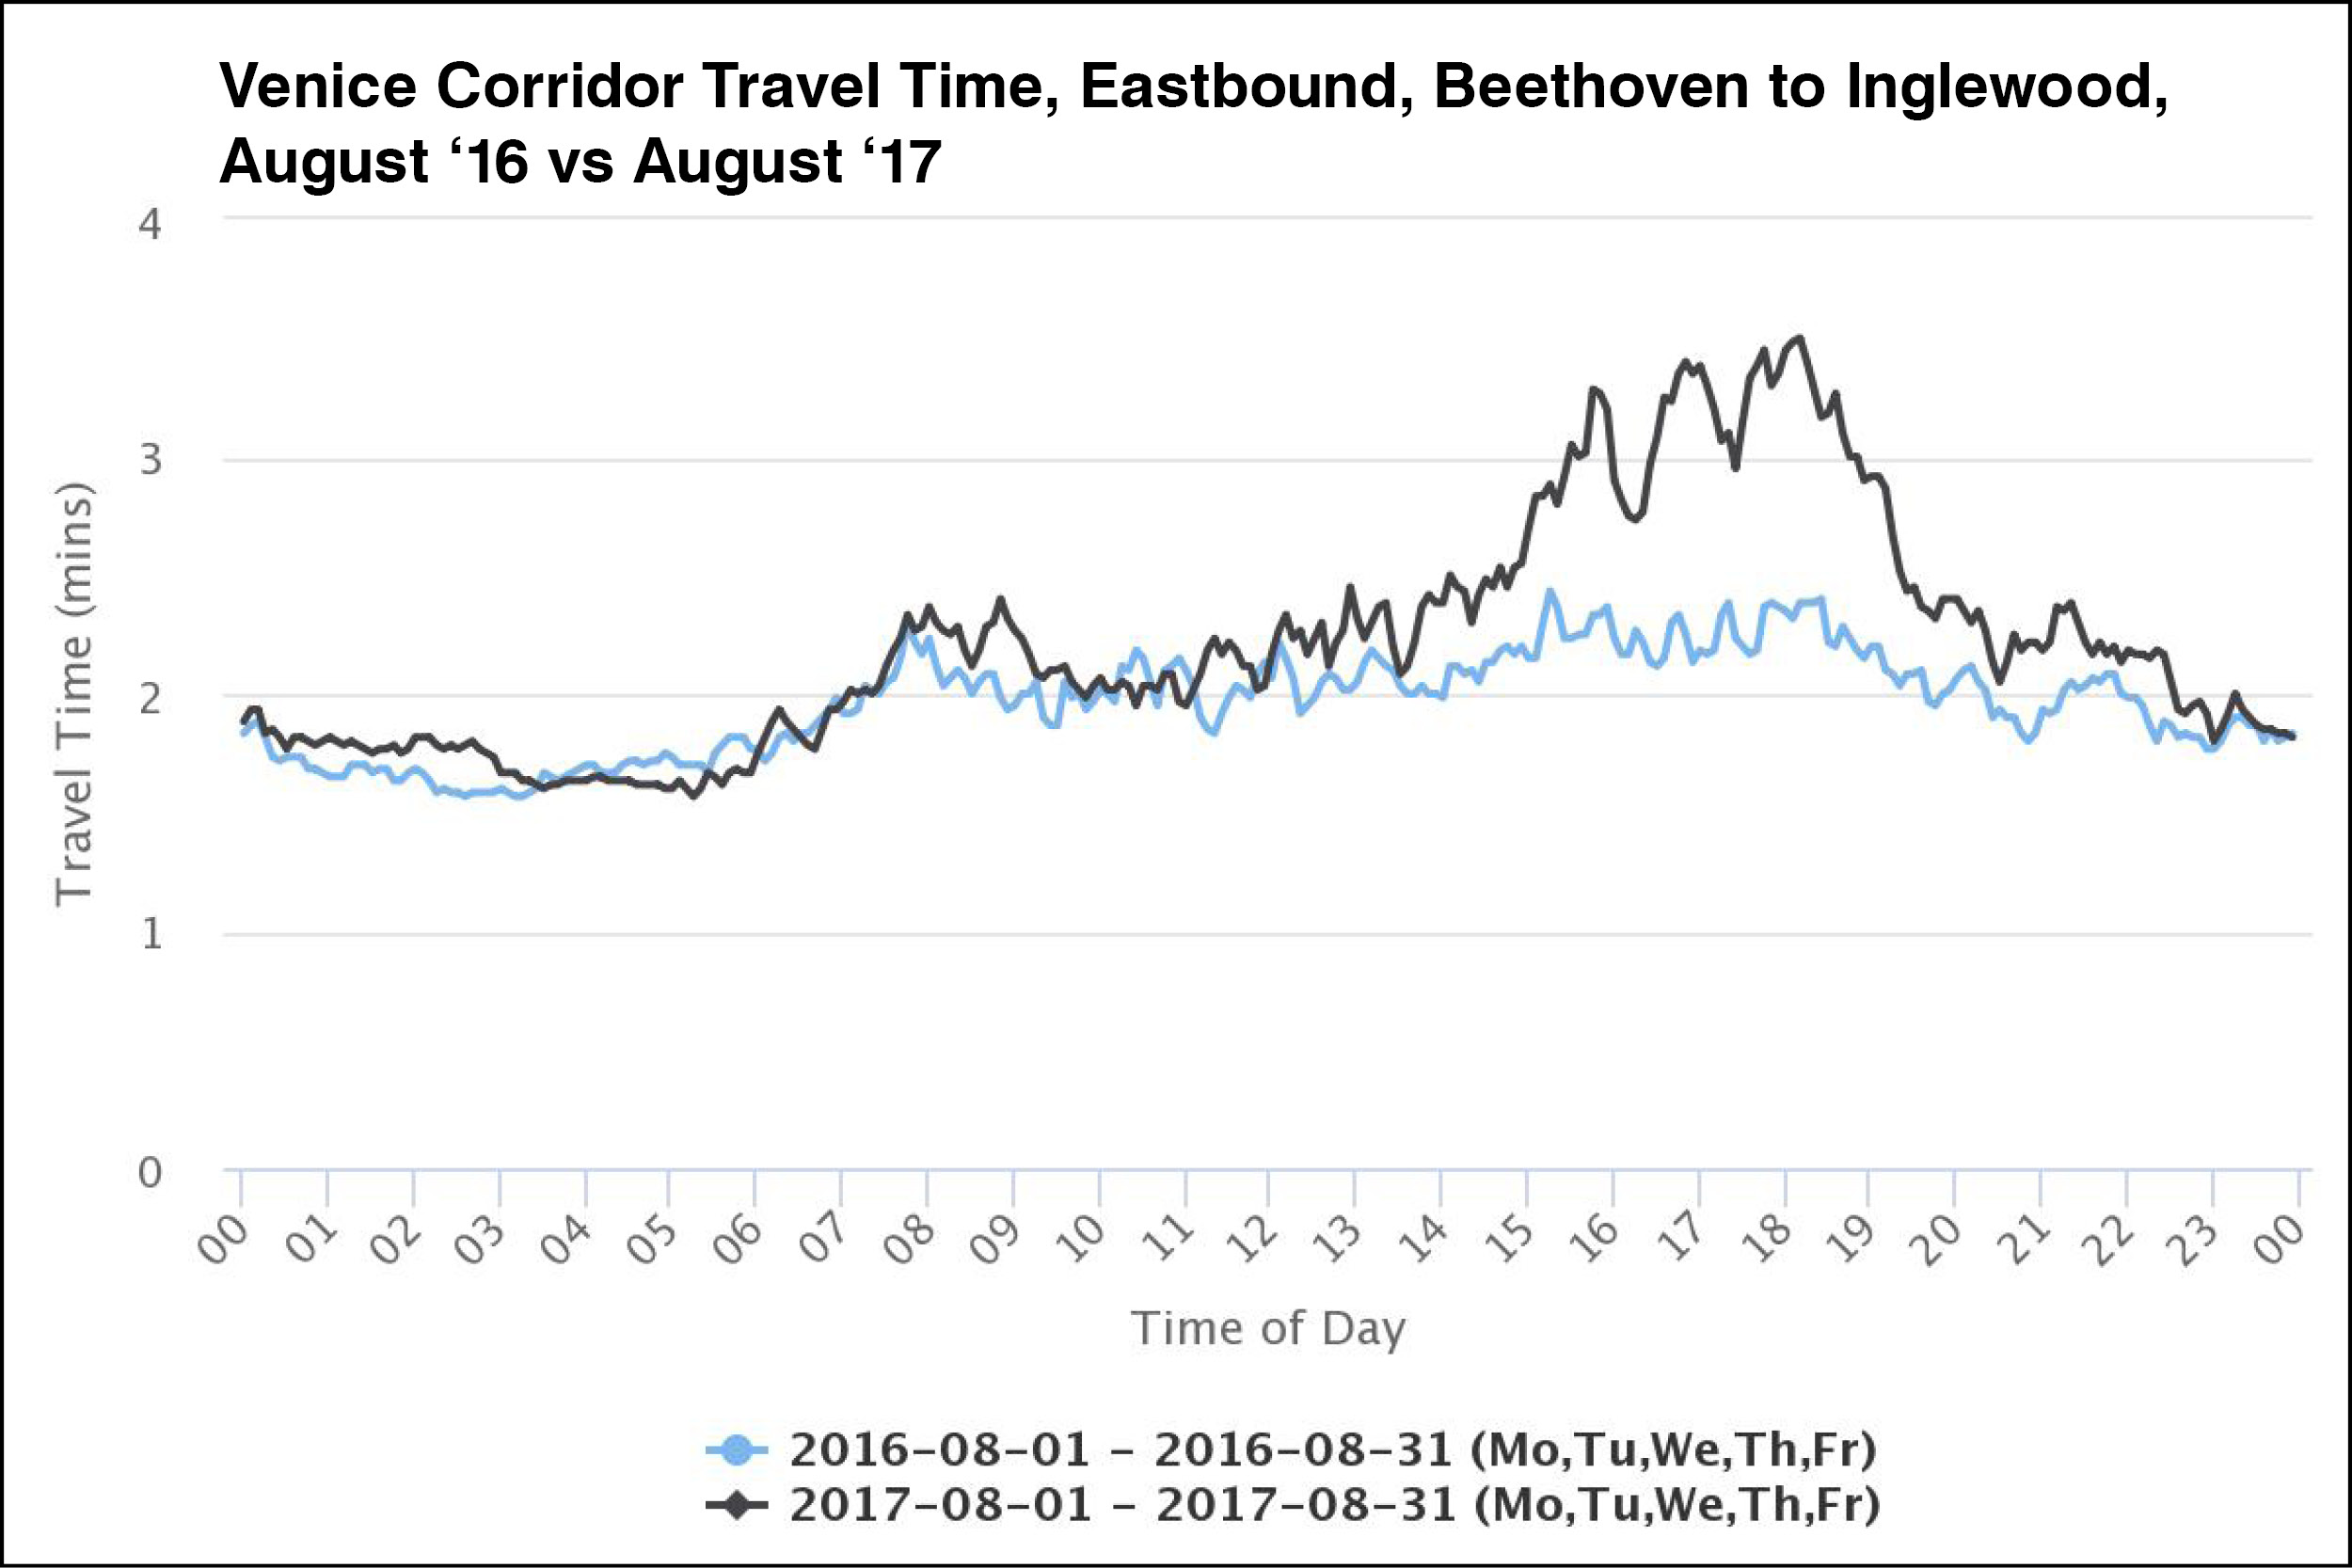 Compared to August 2016, travel times in August 2017 heading eastbound ranged from no change to 60 seconds during the PM commute.